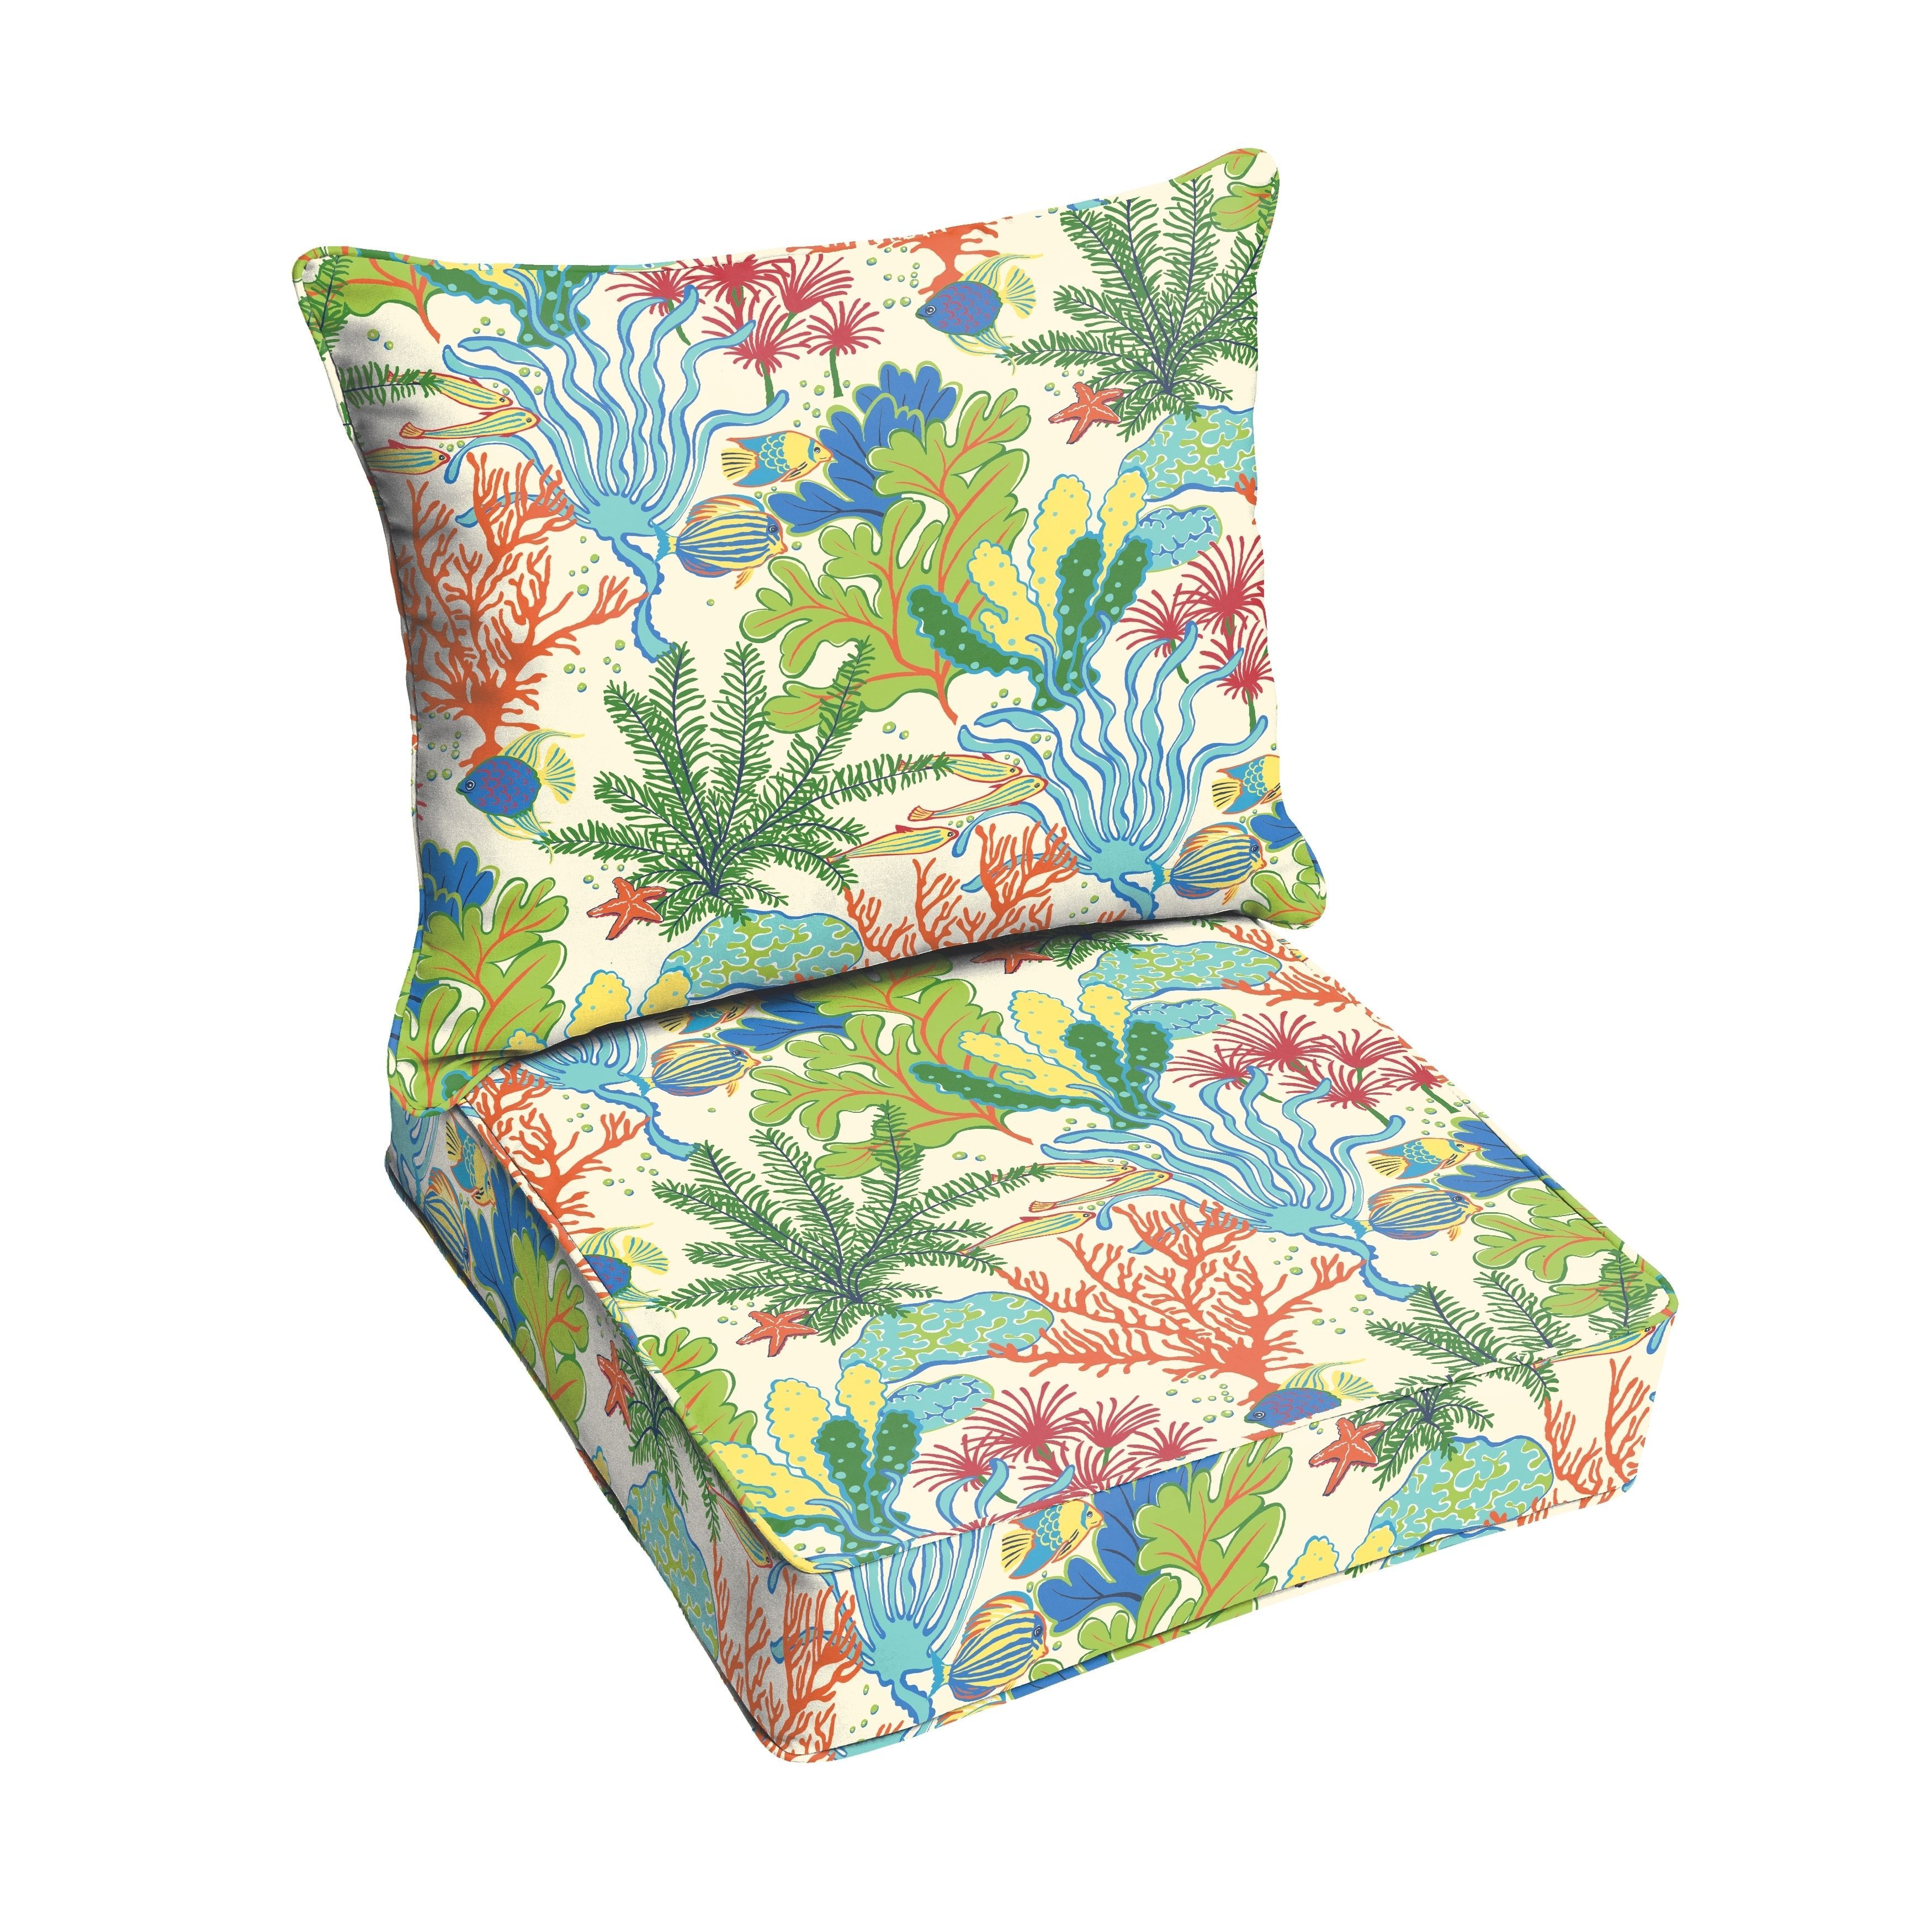 Blue Green Seascape Indoor/ Outdoor Corded Chair Cushion And Pillow Set (OSPC4903) (Polyester, Graphic Print), Outdoor Cushion